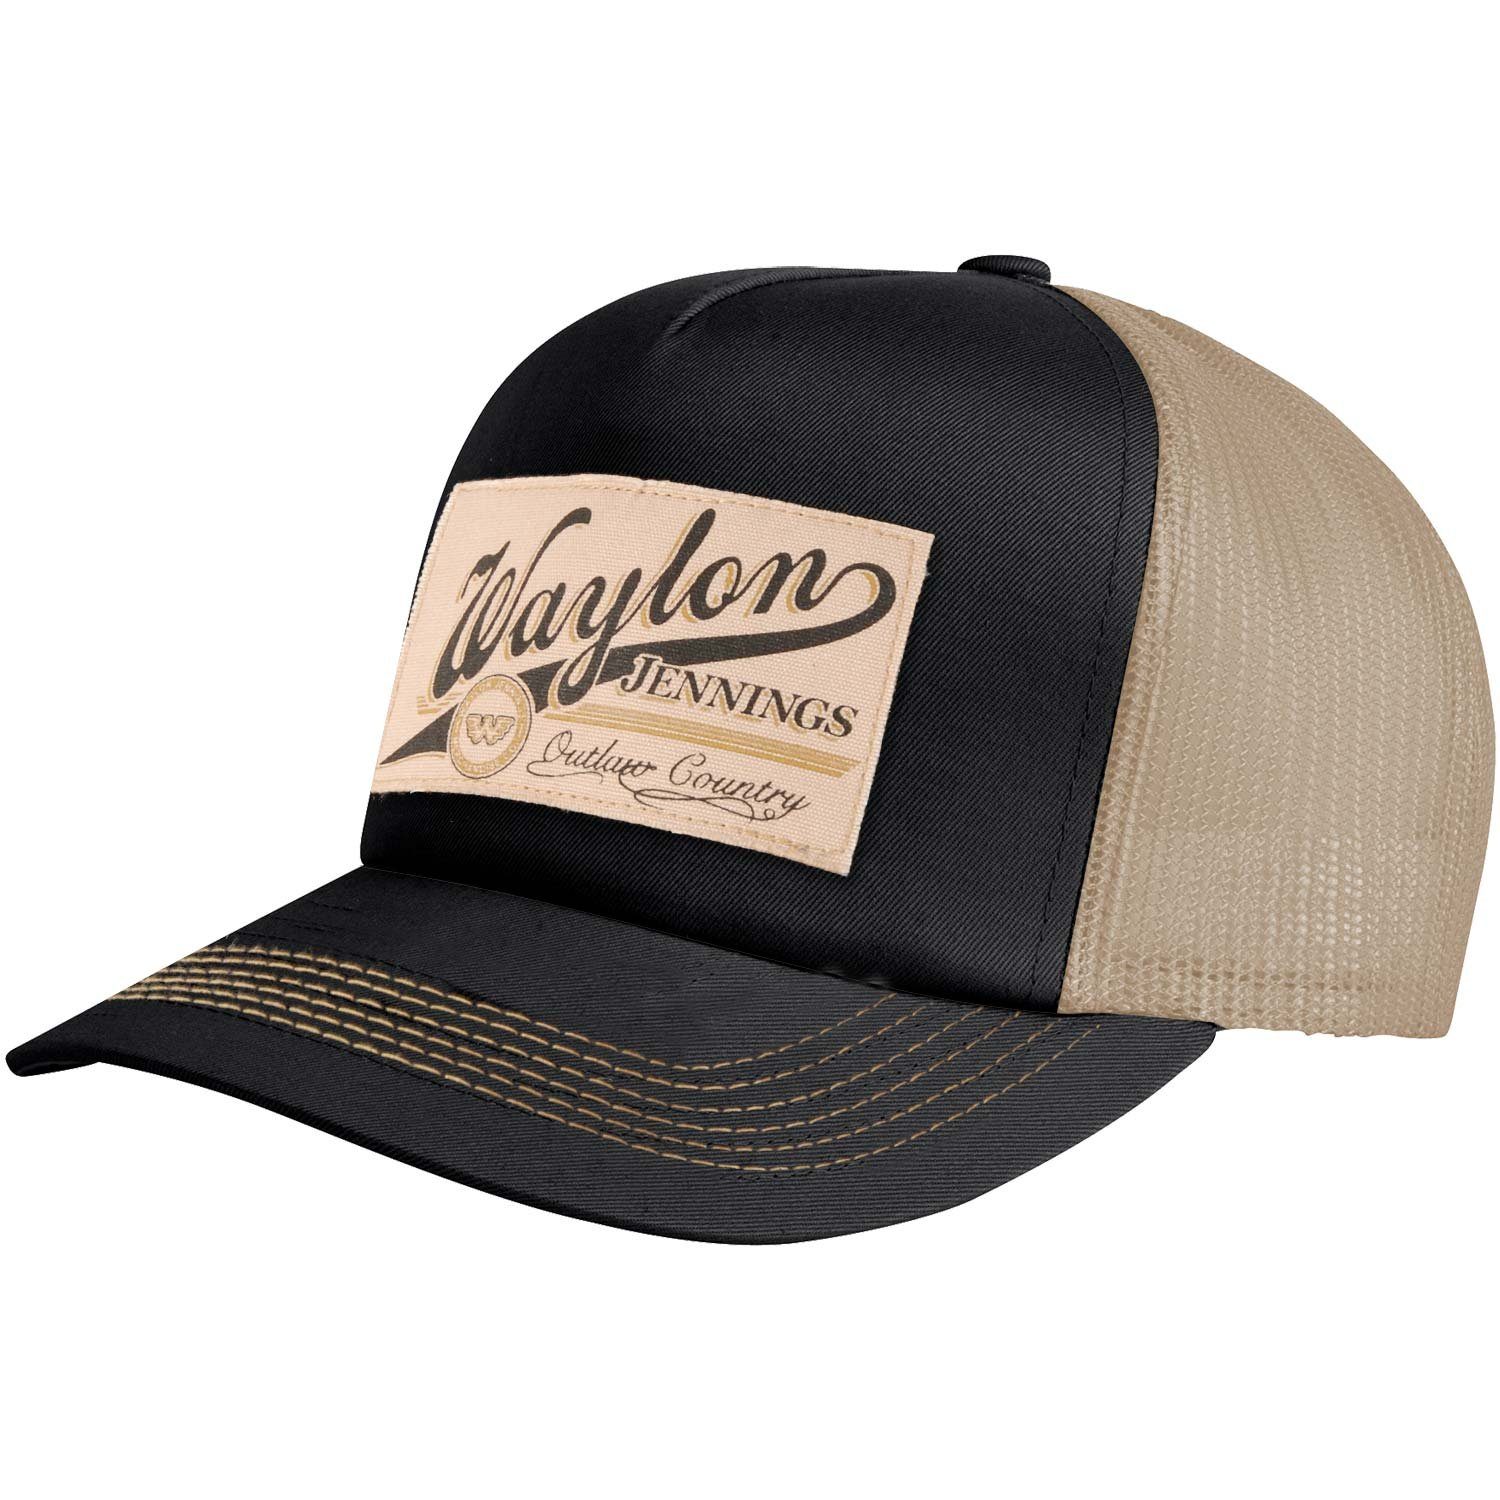 Waylon Jennings Men's Patch Trucker Hat Trucker Cap Cream KINGS ROAD MERCH